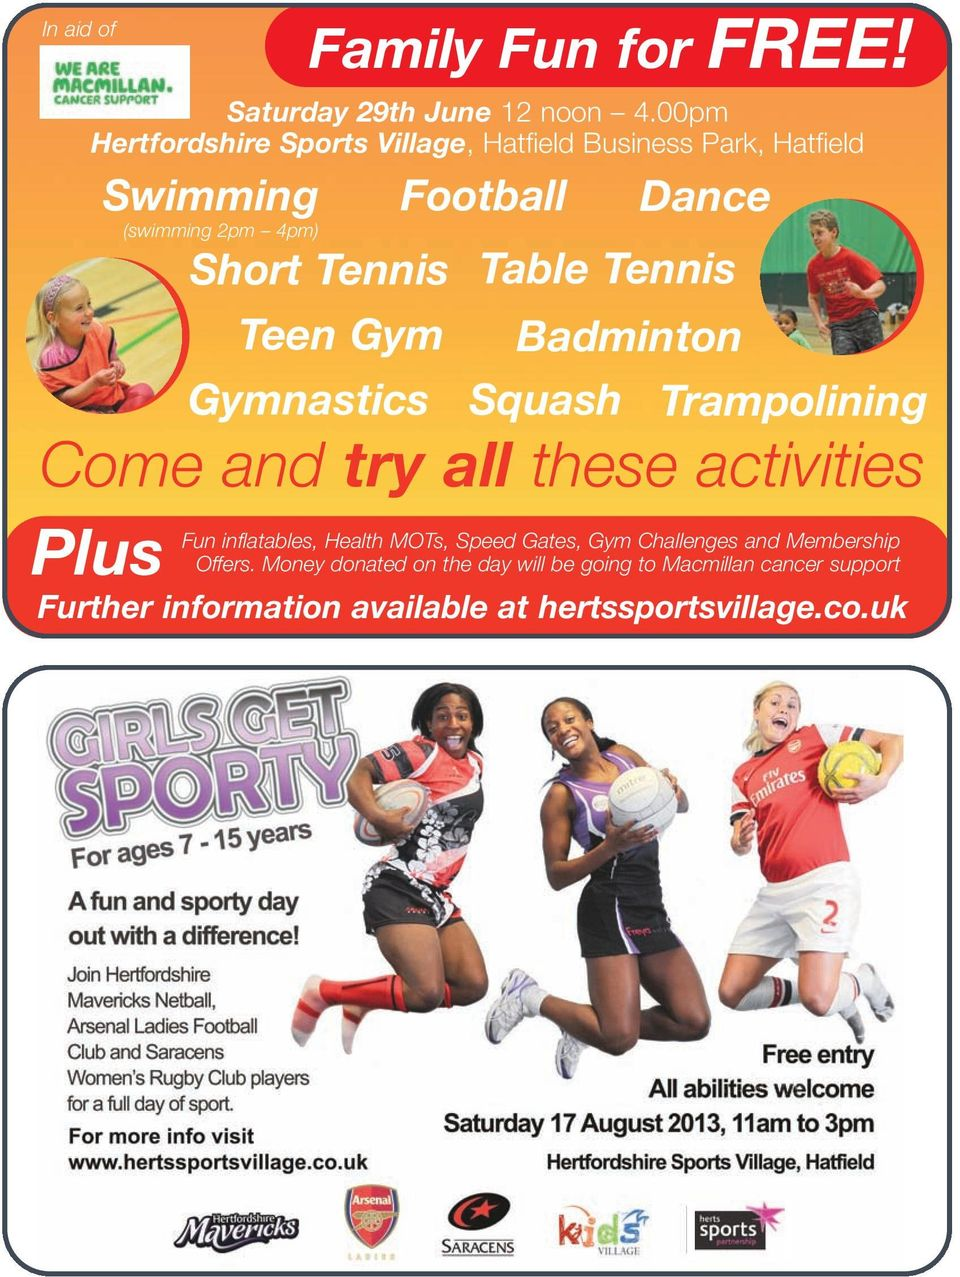 Gymnastics Football Table Tennis Badminton Squash Dance Trampolining Come and try all these activities Fun inflatables,